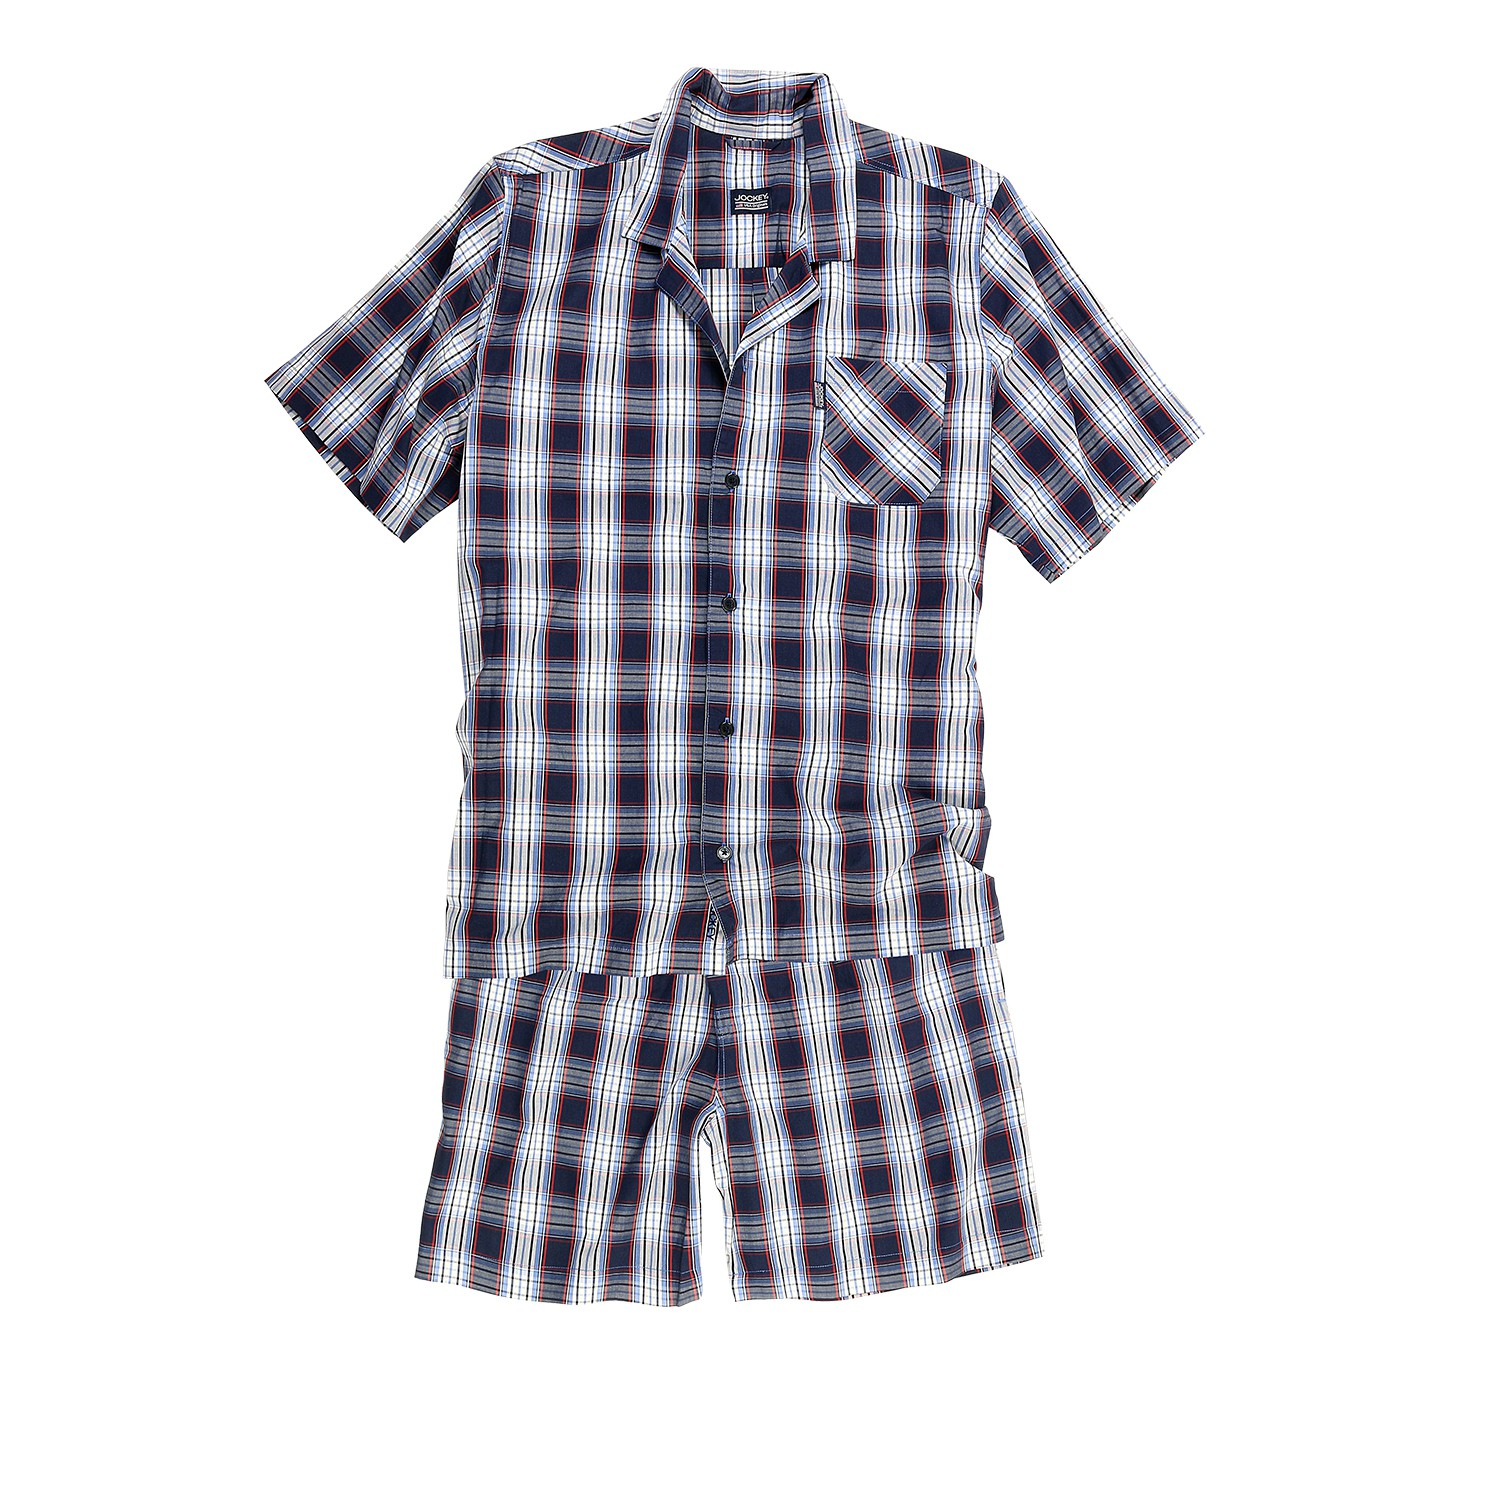 Detail Image to Short Pyjama for men by Jockey checked / size S up to oversize 6XL